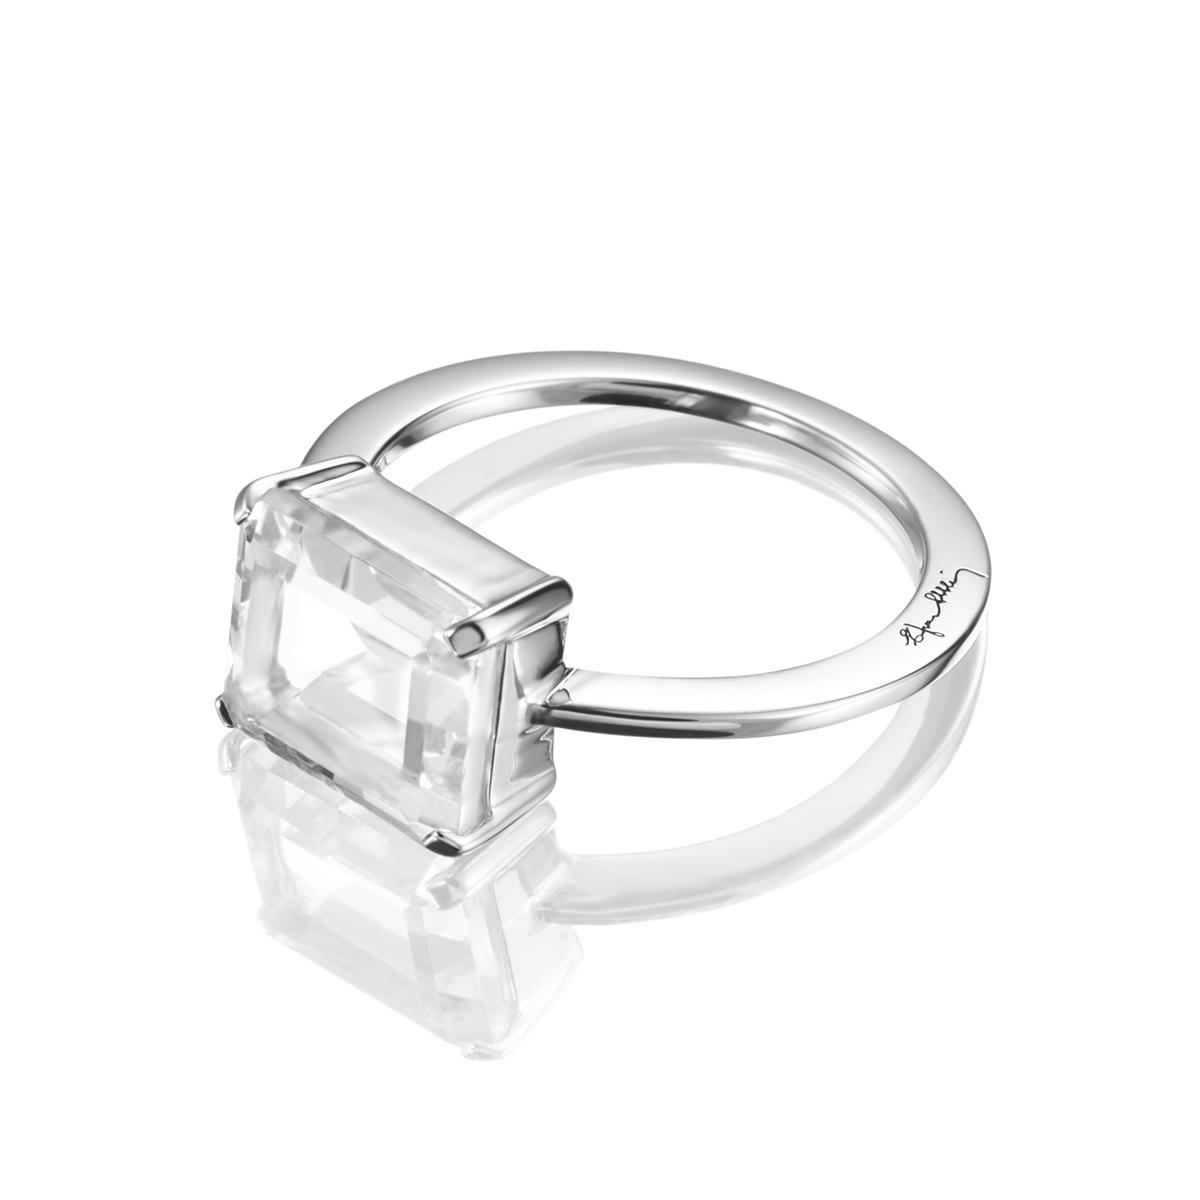 Efva-Attling-18_A-Clear-Dream-Ring-13-100-01339(2)